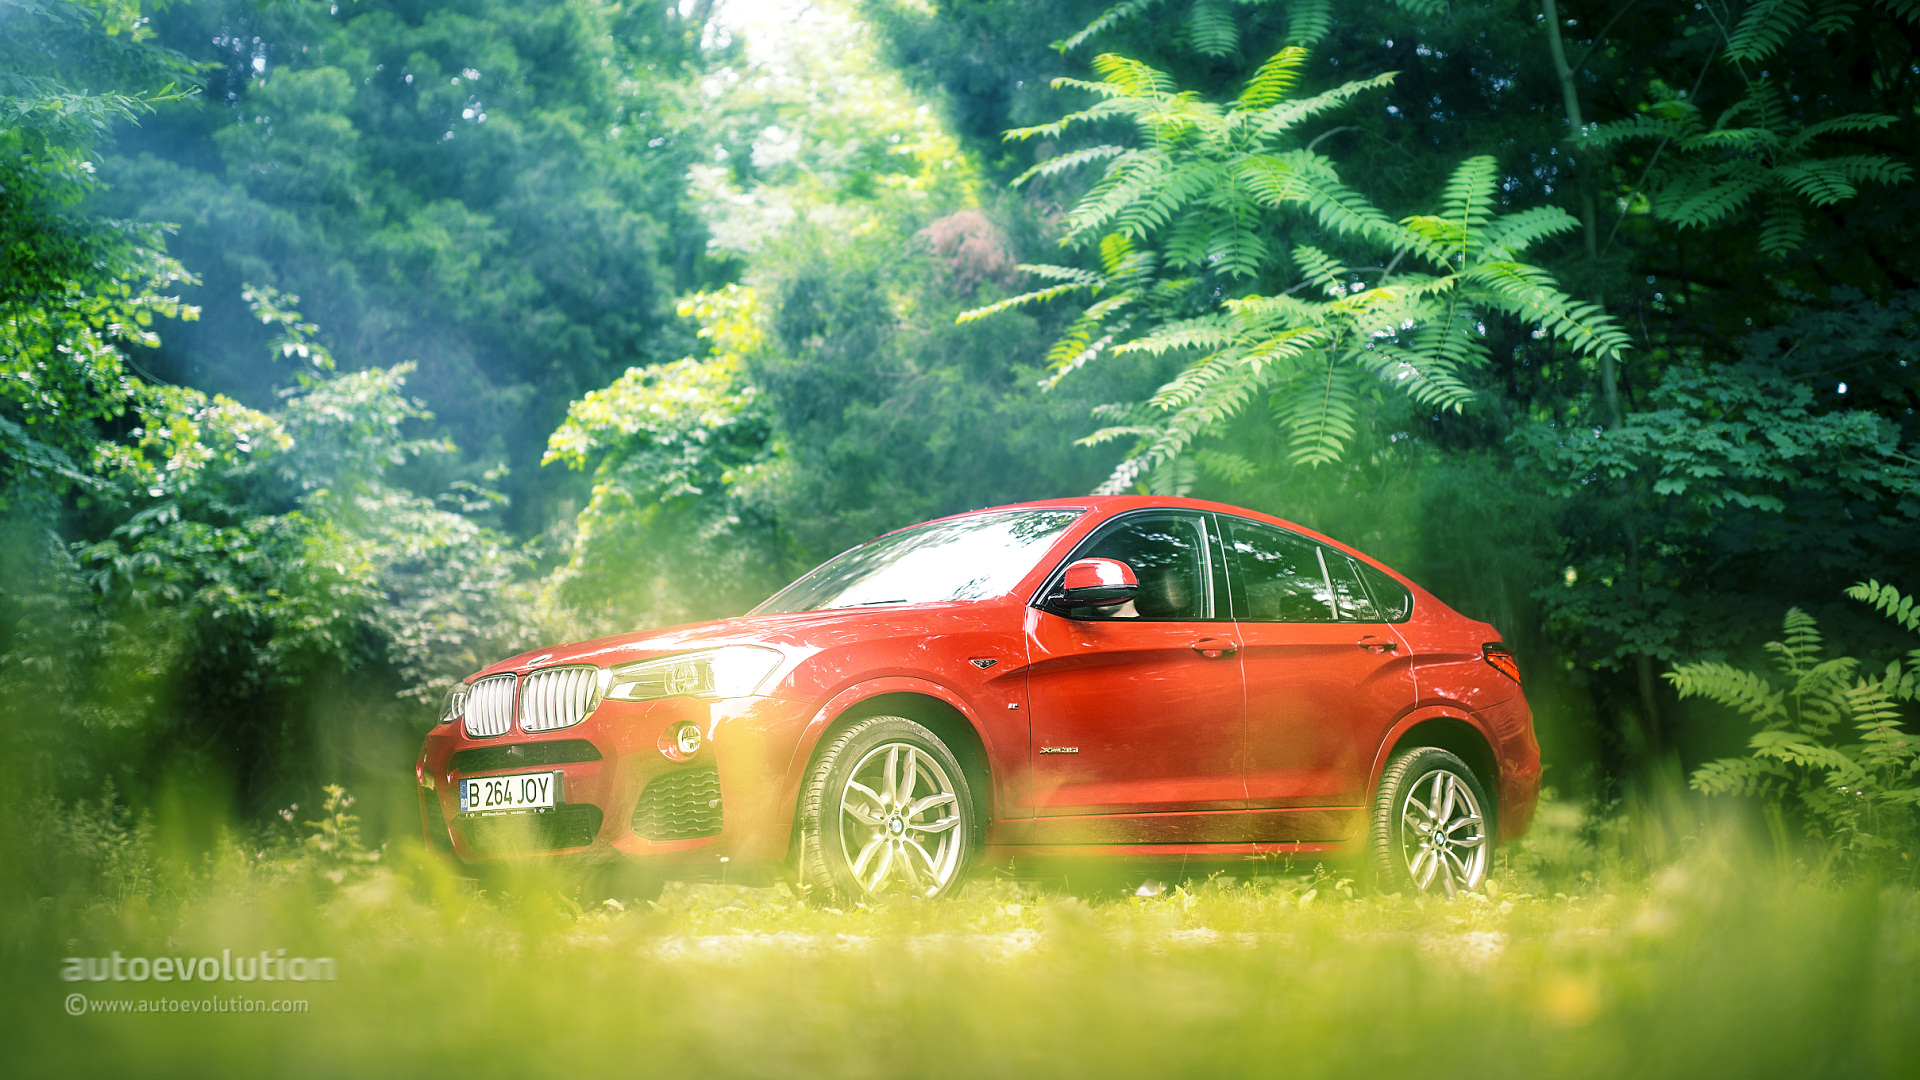 Bmw X4 Hd Wallpapers Autoevolution